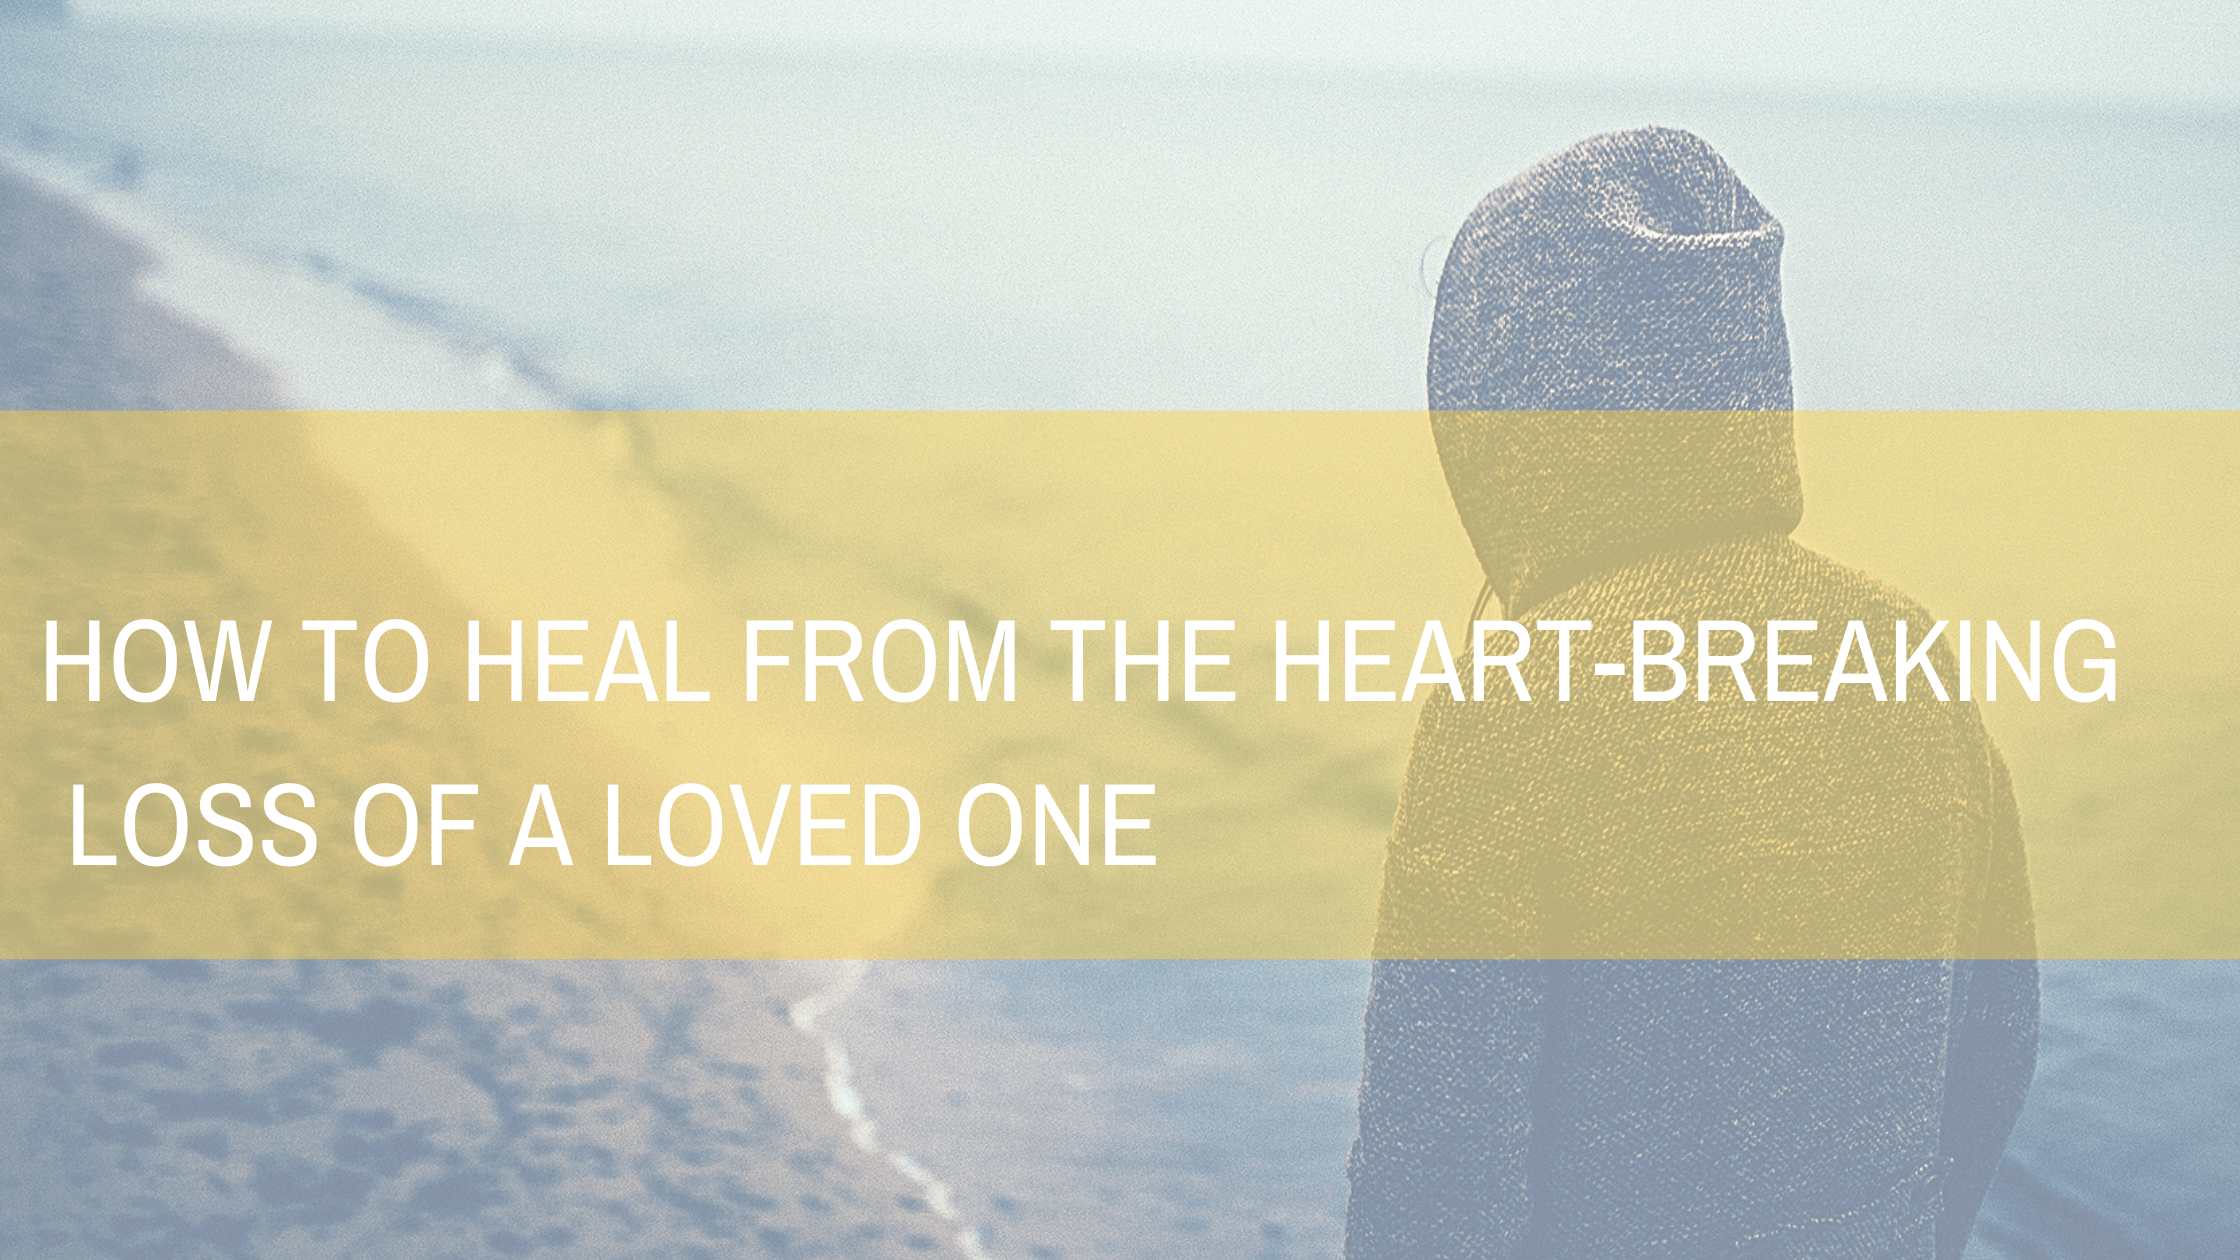 How-to-heal-from-the-heart-breaking-loss-of-a-loved-one- Grief and bereavement counselling